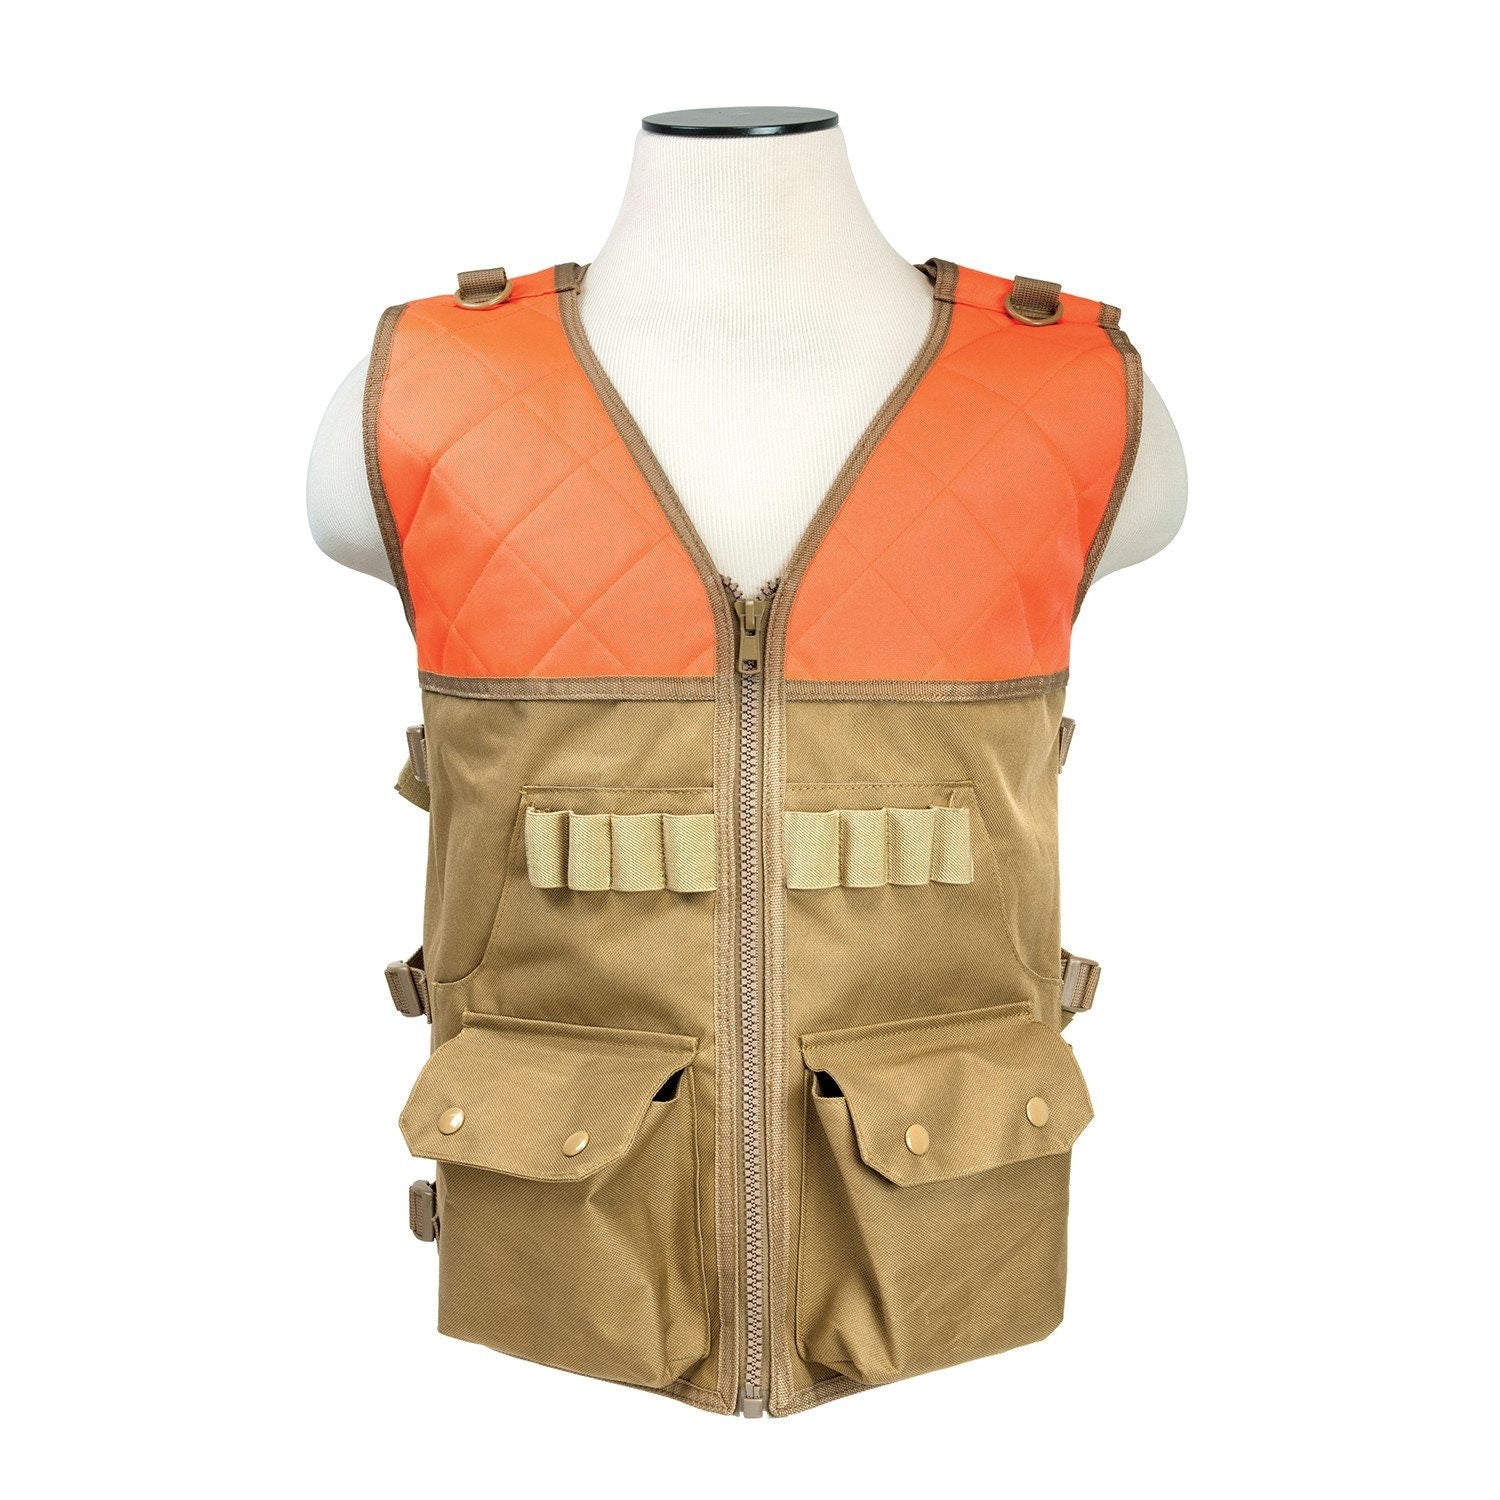 Shotgun / Hunting Vest - Blaze Orange & Tan - Vests/chest Rigs - Vism - Colonel Mustard